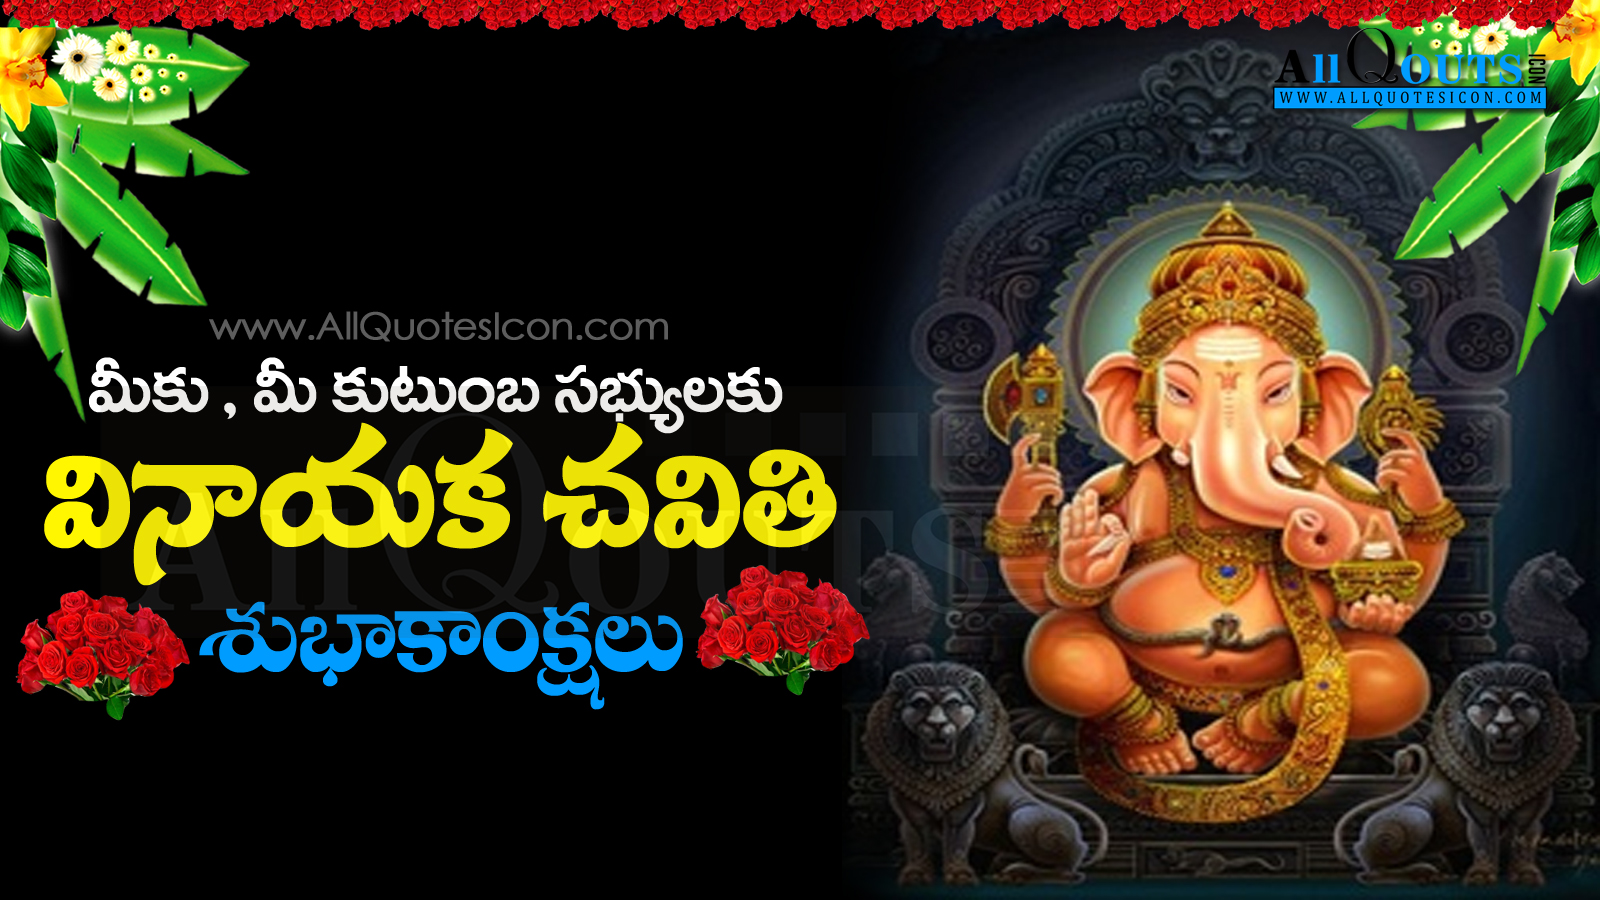 Awesome greetings and wallpapers happy ganesh chaturdhi quotes and ganesh chaturthi widely celebrated in andhrapradesh karnatakavinayaka chavithi quotes in telugu greetings in m4hsunfo